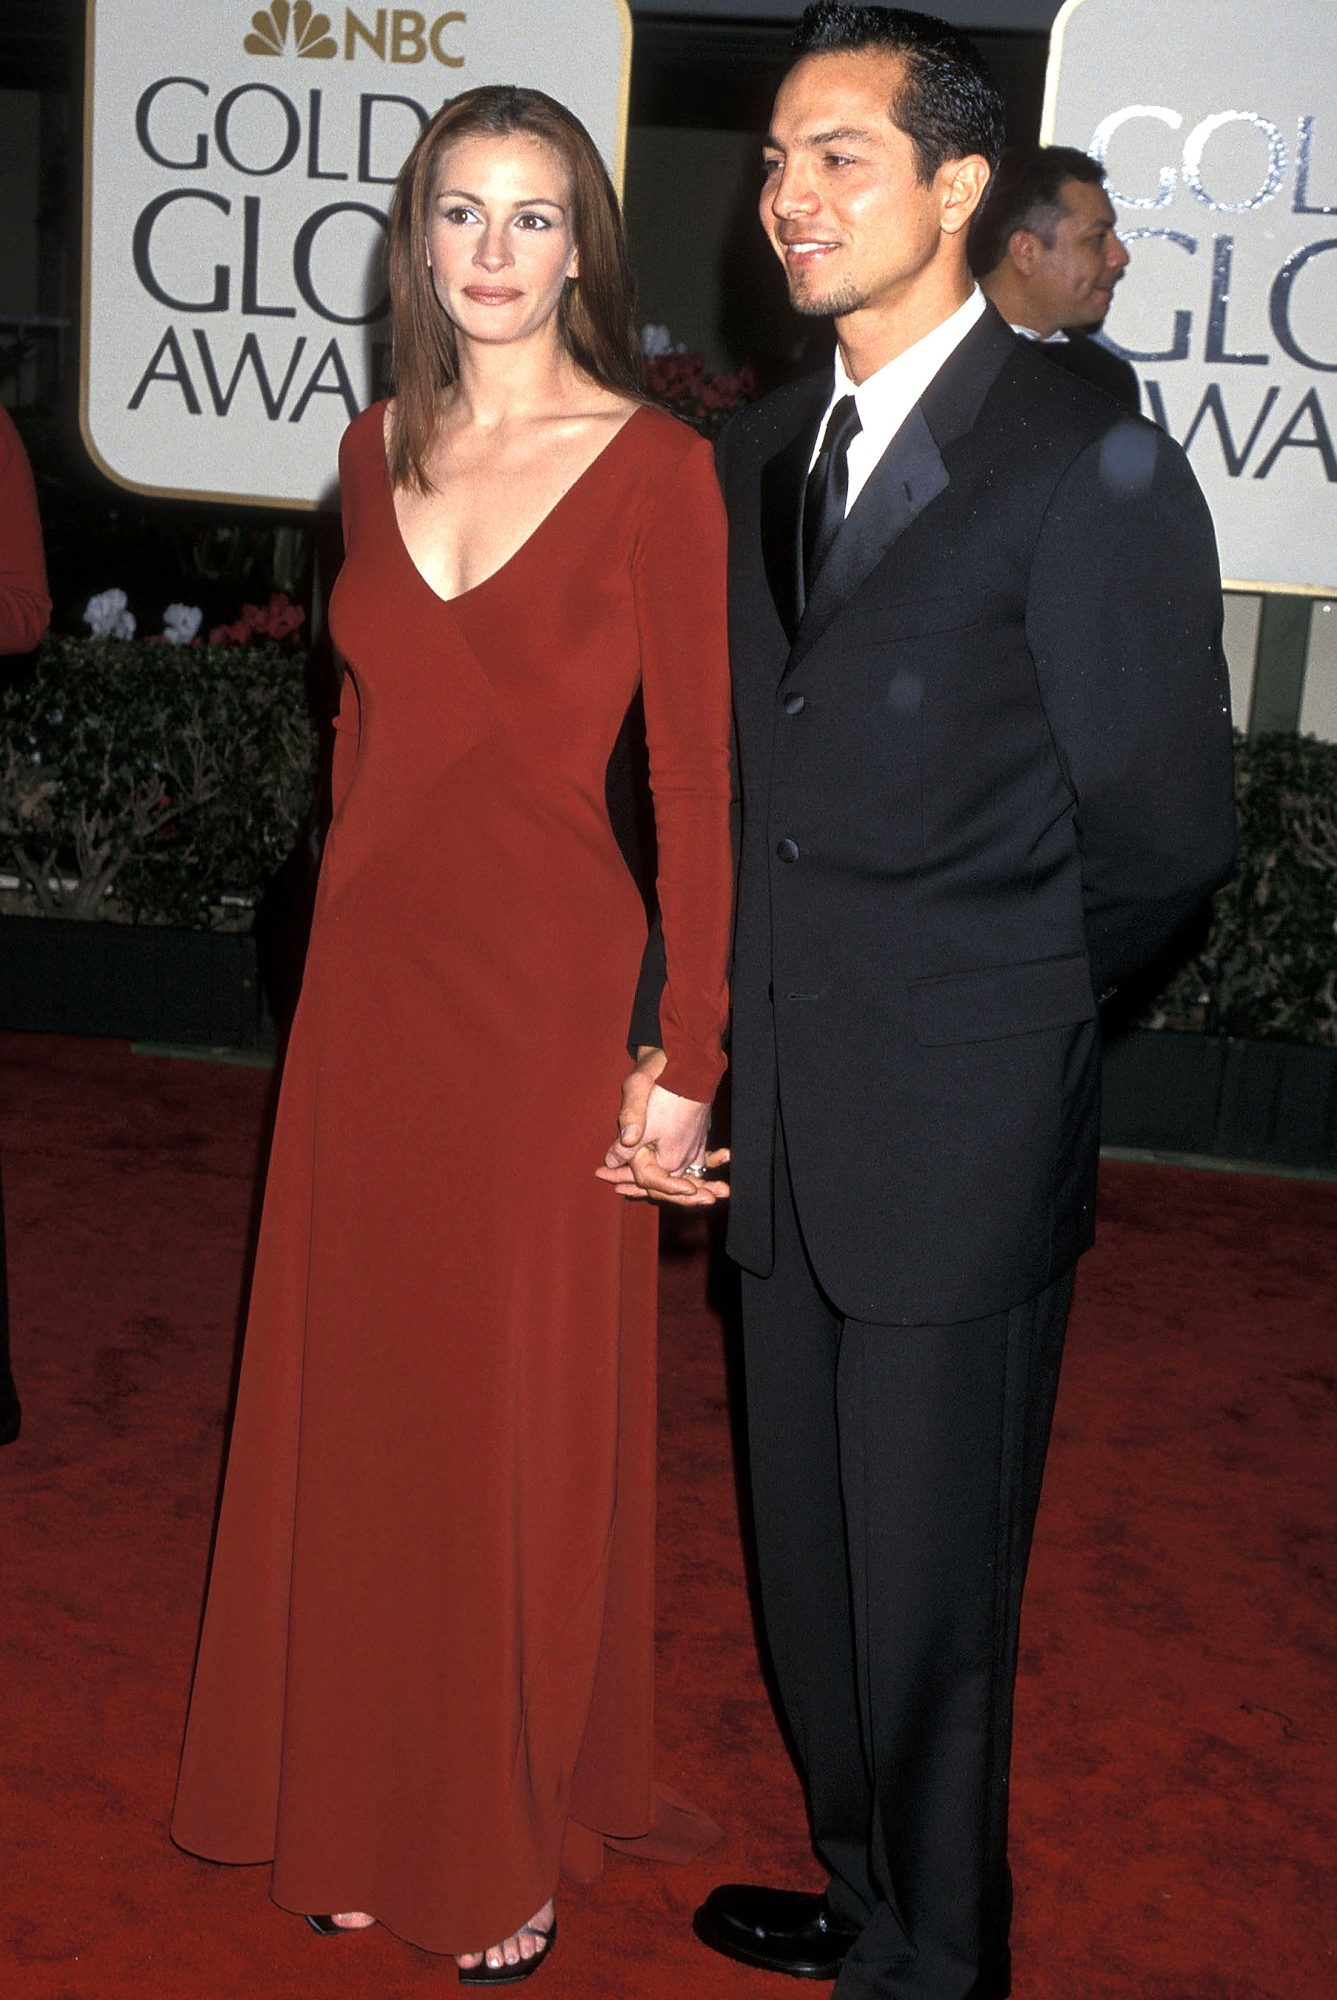 At the Golden Globes, 2000